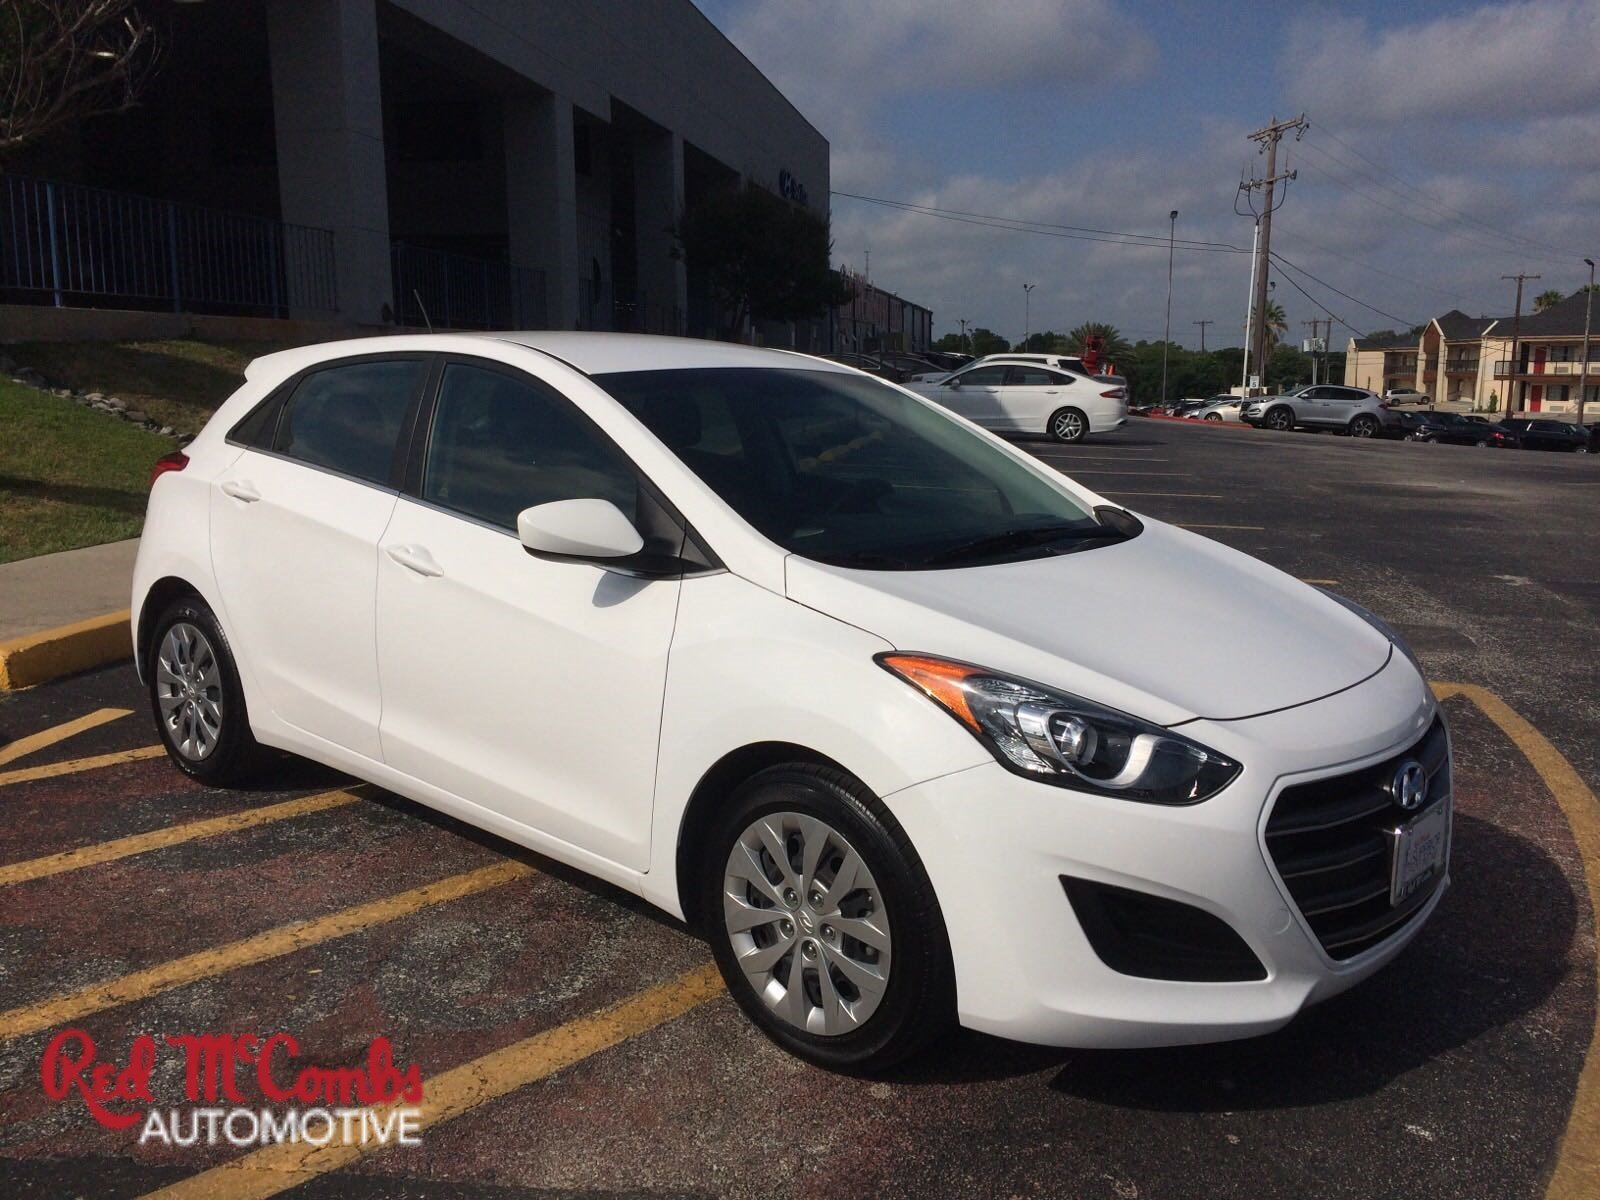 Pre Owned 2017 Hyundai Elantra GT Hatchback in San Antonio